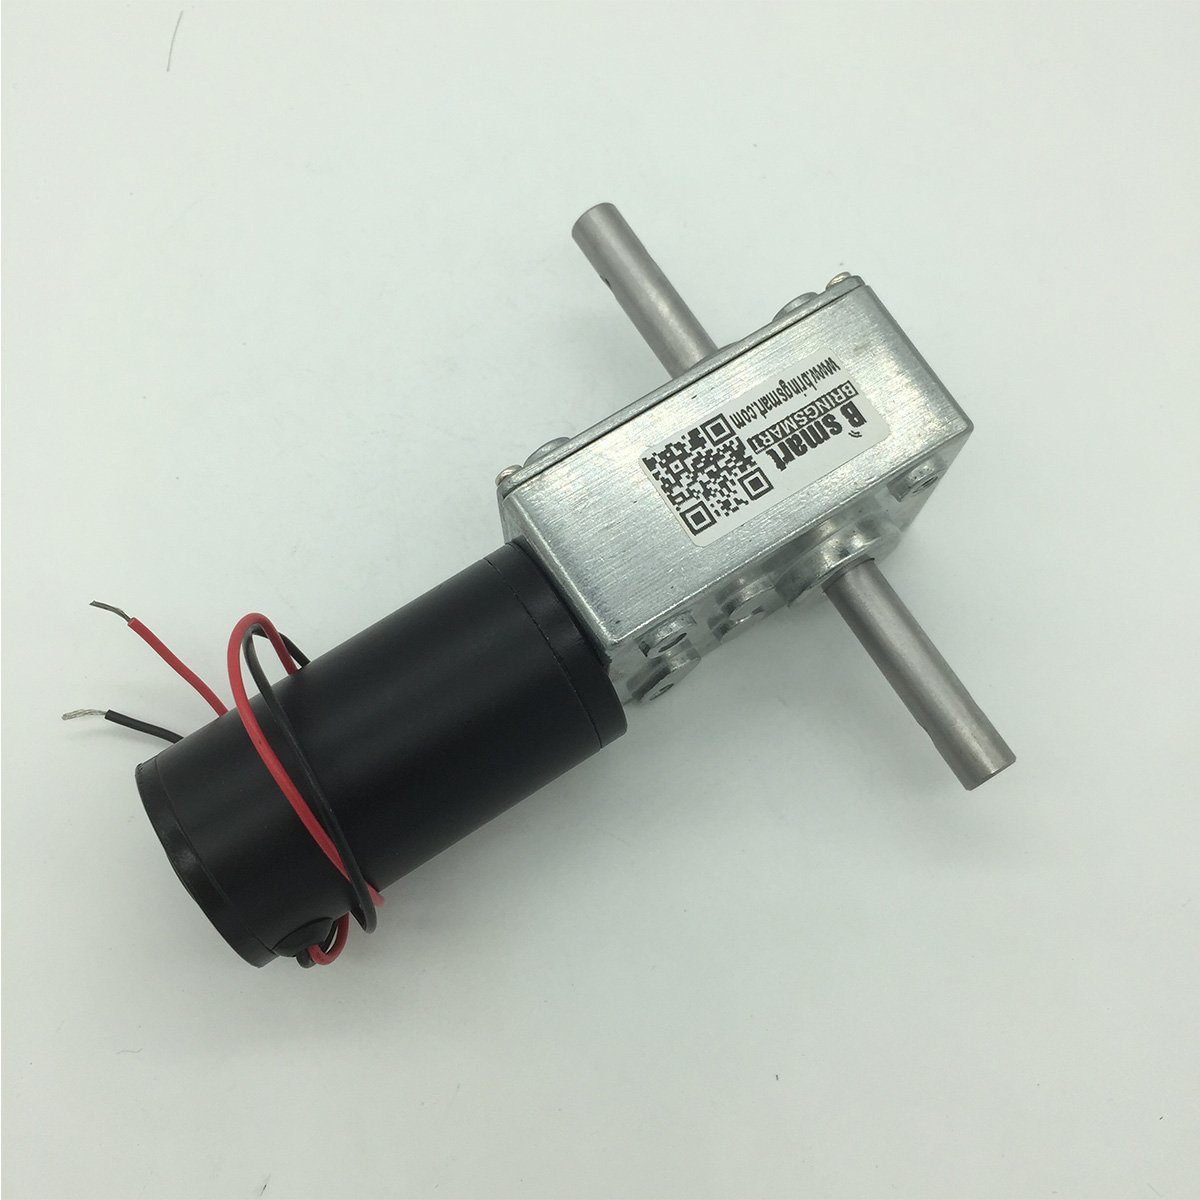 Bringsmart 12V 12rpm DC Worm Gear Motor with Double Shaft Motors Reversed Self-lock for Automatic Clothes Hanger